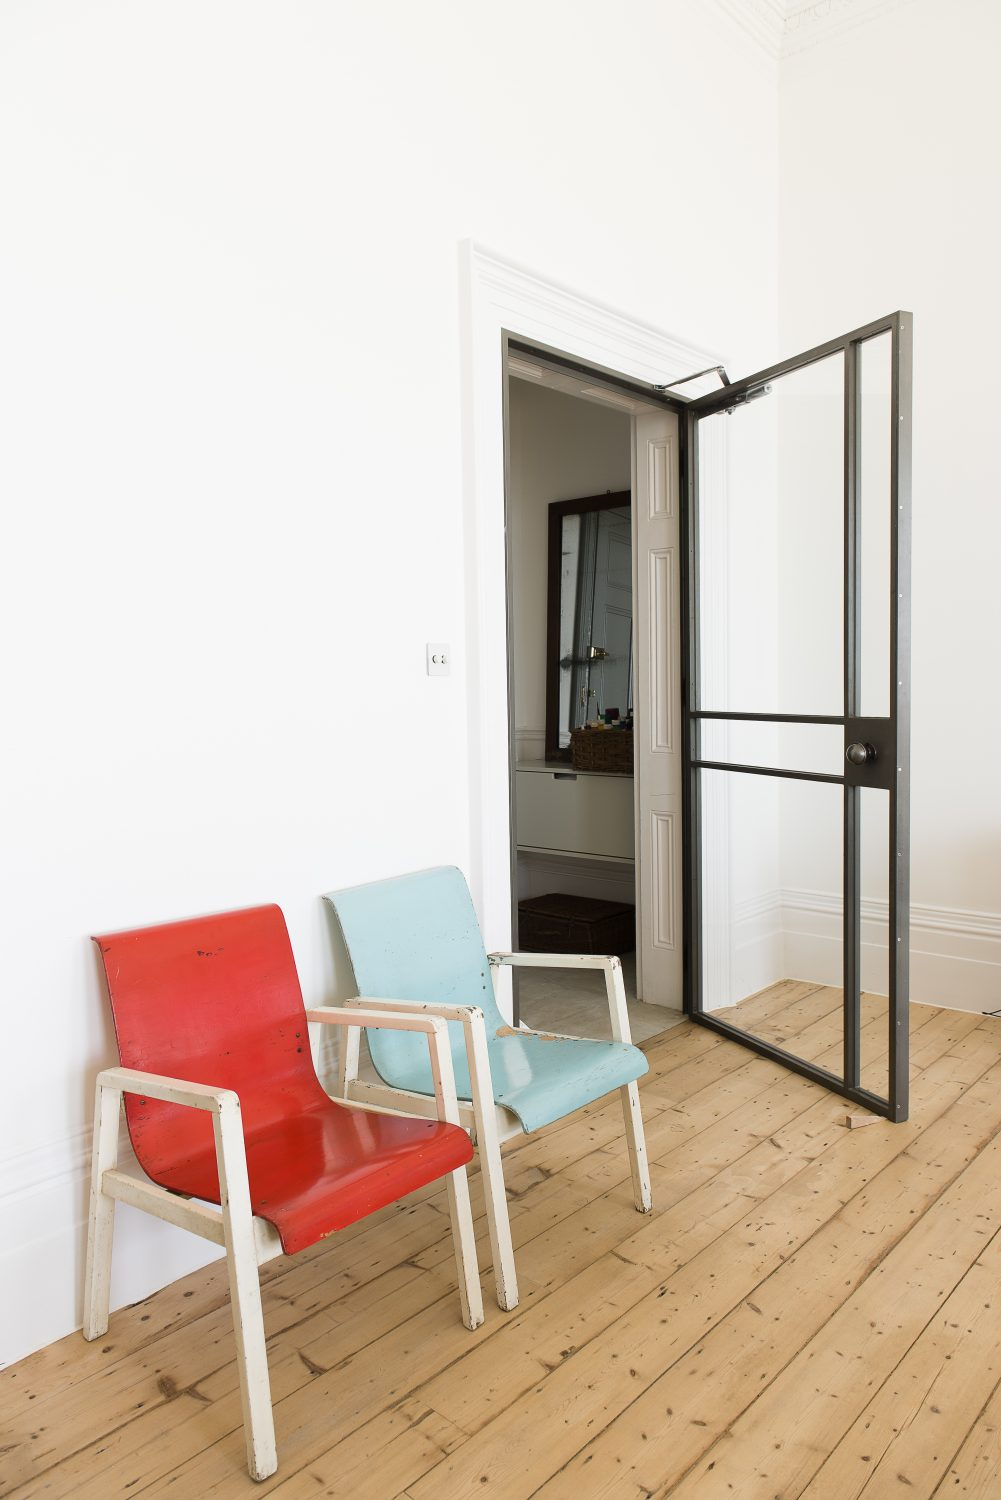 The steel-framed doors were made by a local craftsman. The chairs are originals by Alvar Aalto from De La Warr Pavilion in Bexhill